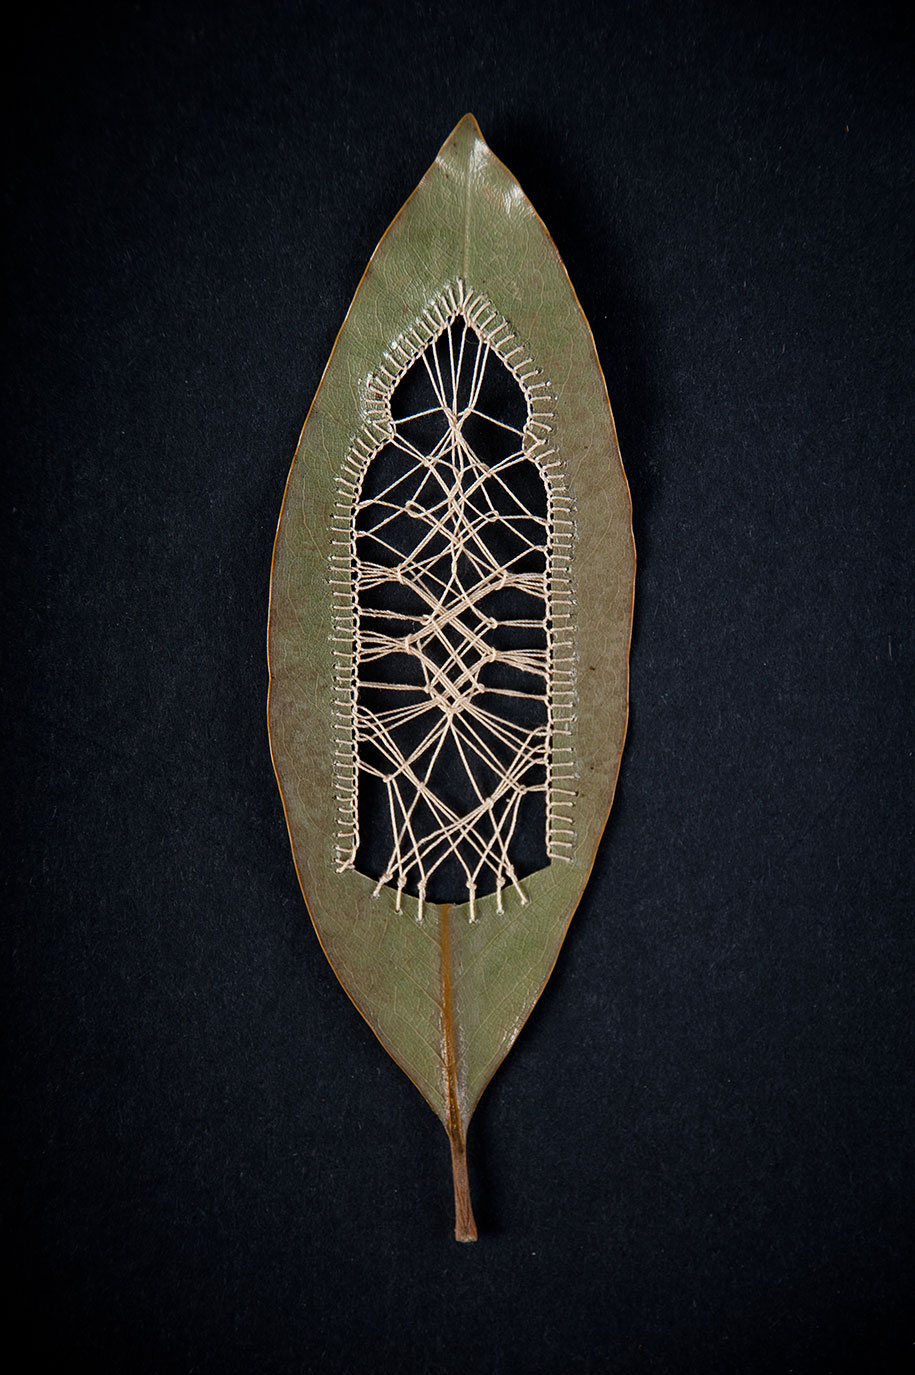 embroidery-art-stitched-leaves-hillary-fayle-3